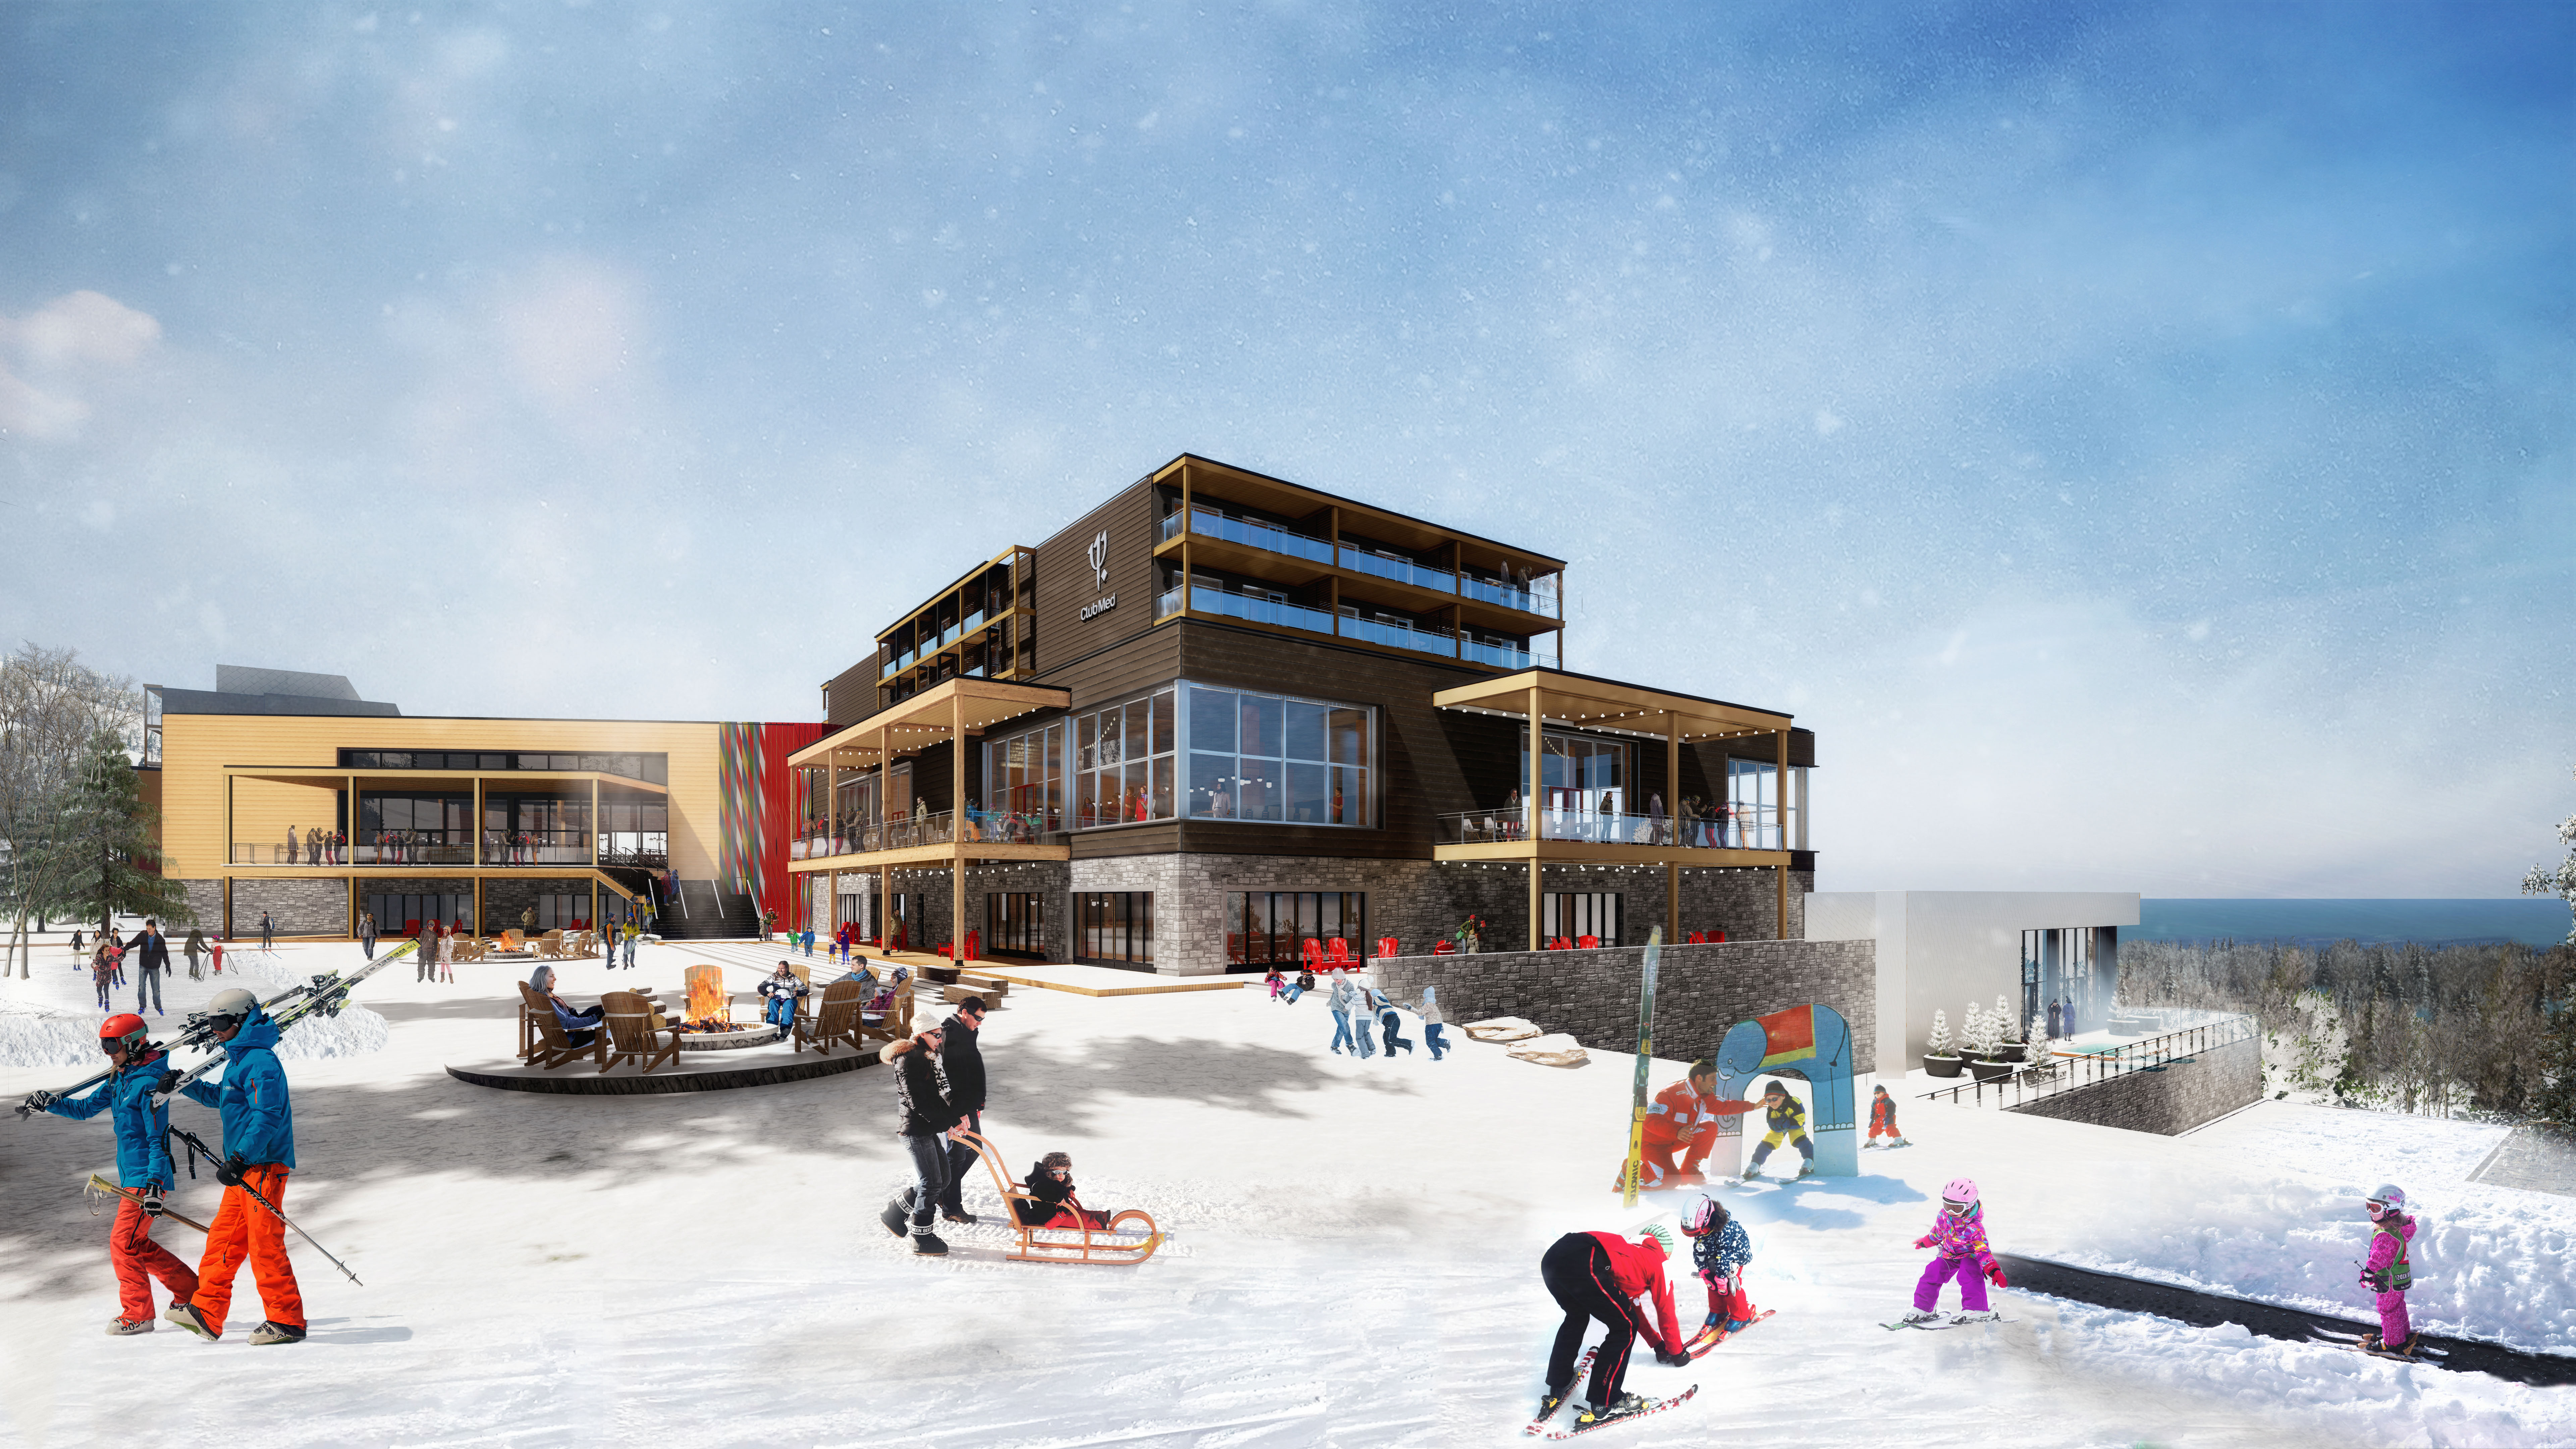 Club Med will make its debut in Canada next year.